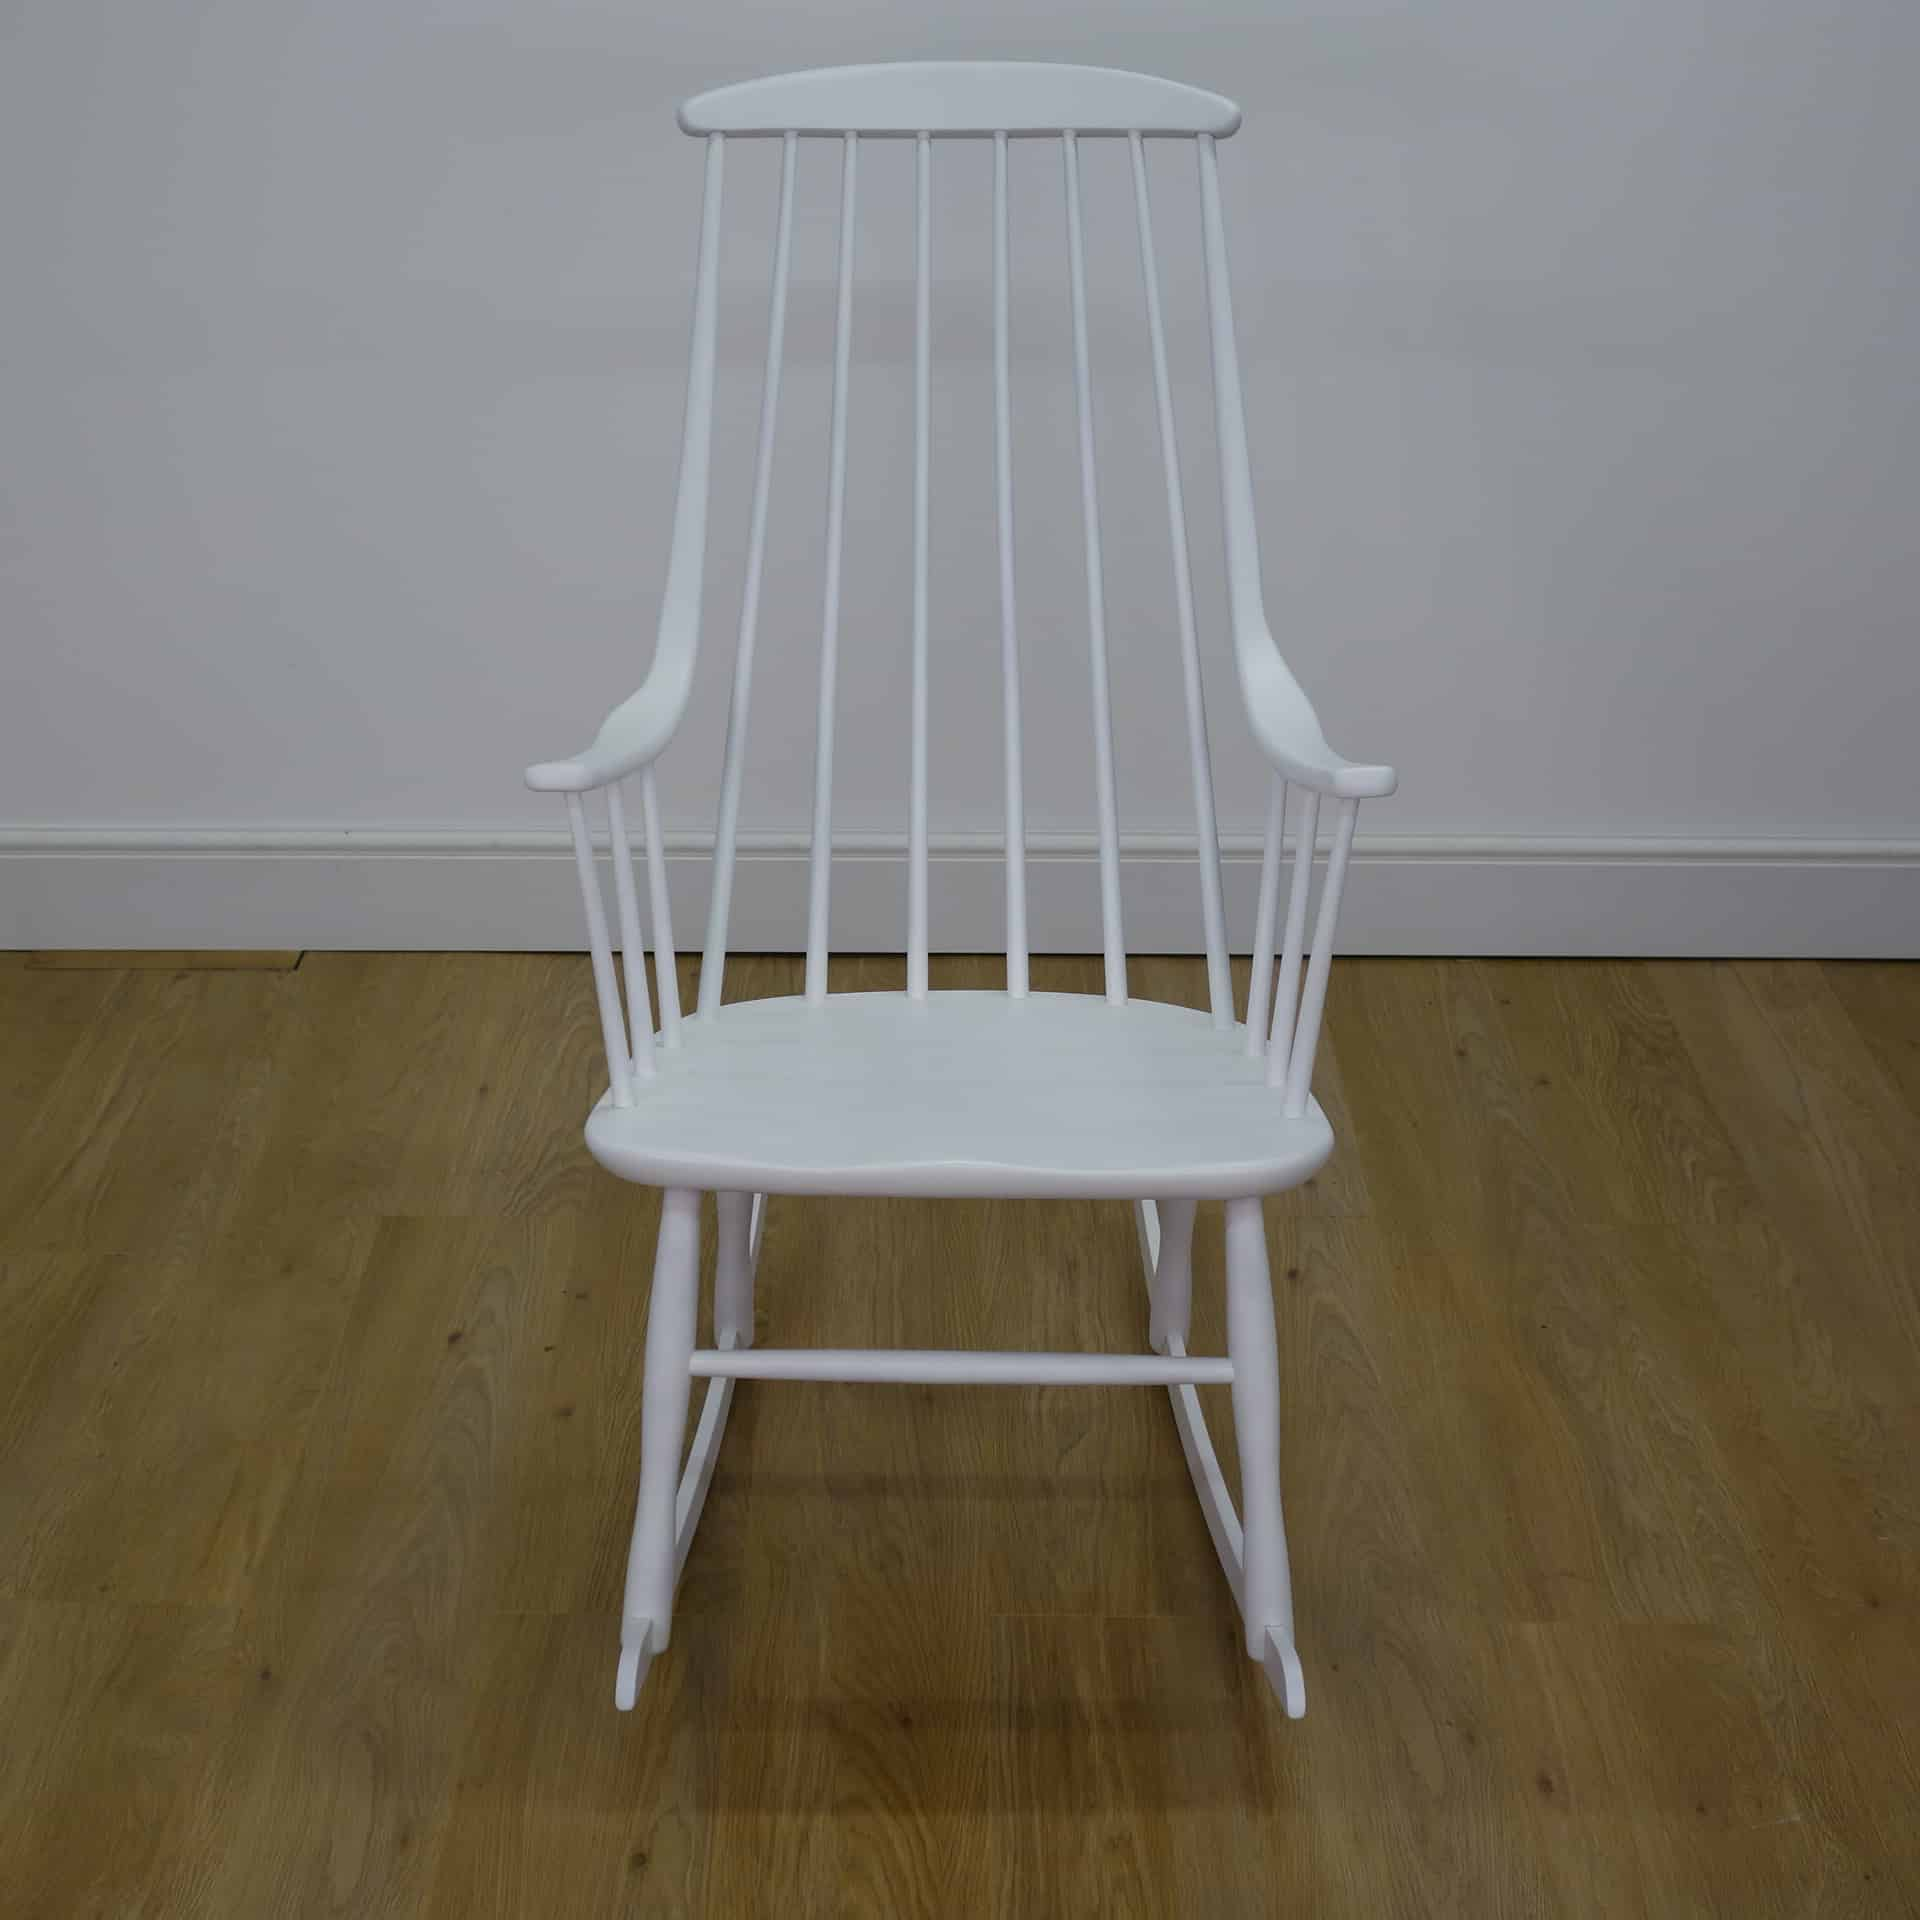 White Grandessa Rocking Chair By Lena Larsson Mark